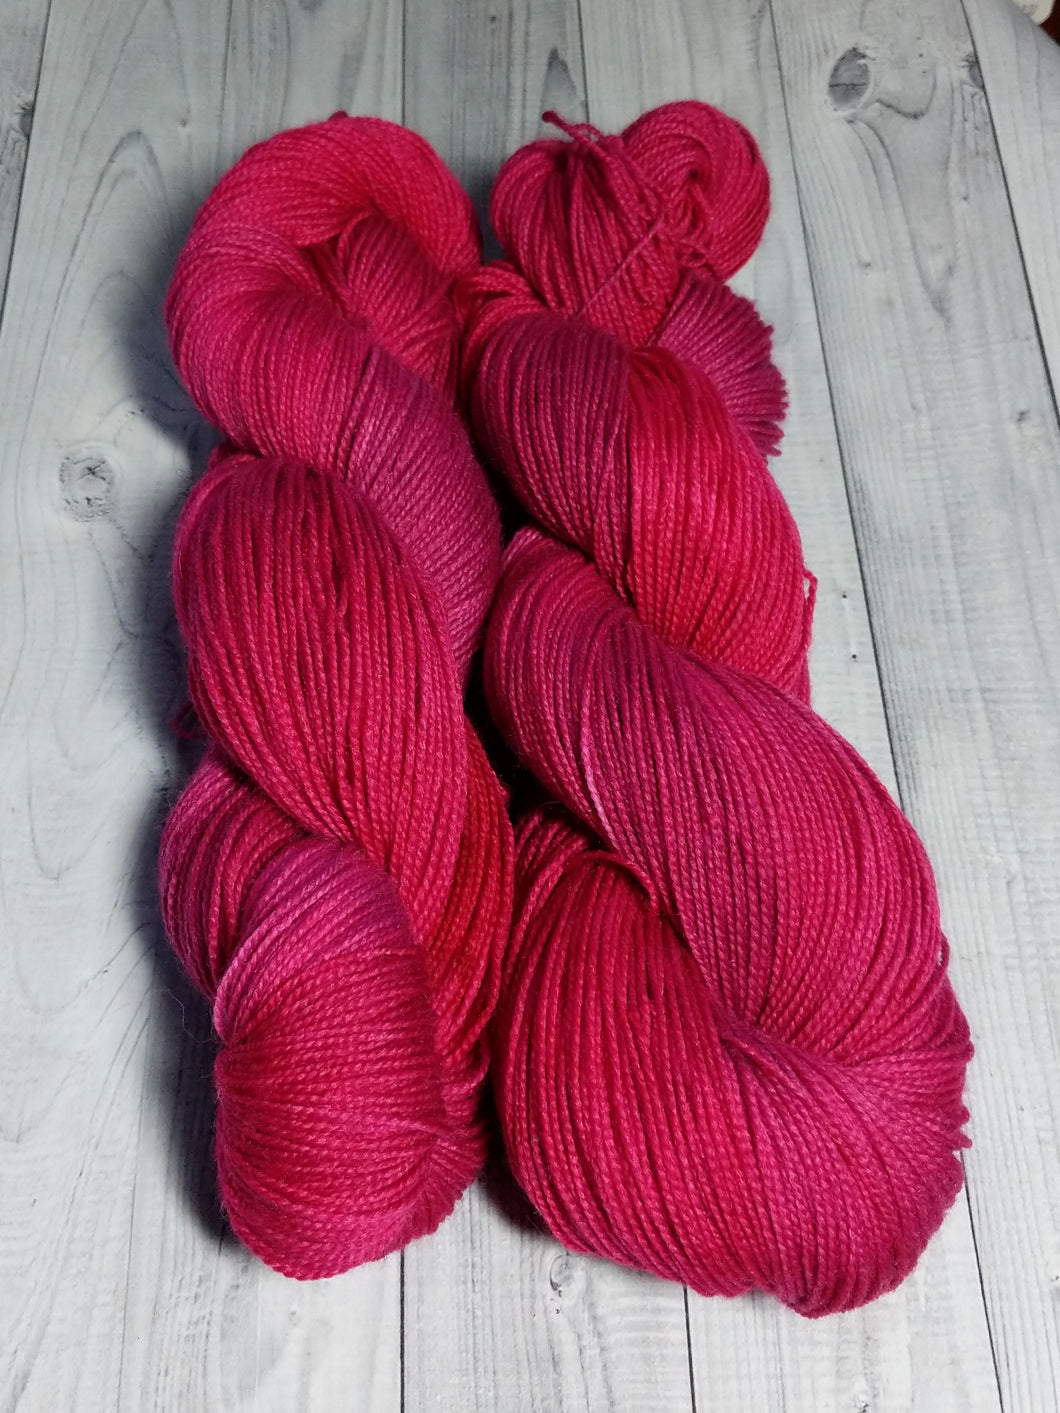 Ruby Corundrum, BFL High Twist